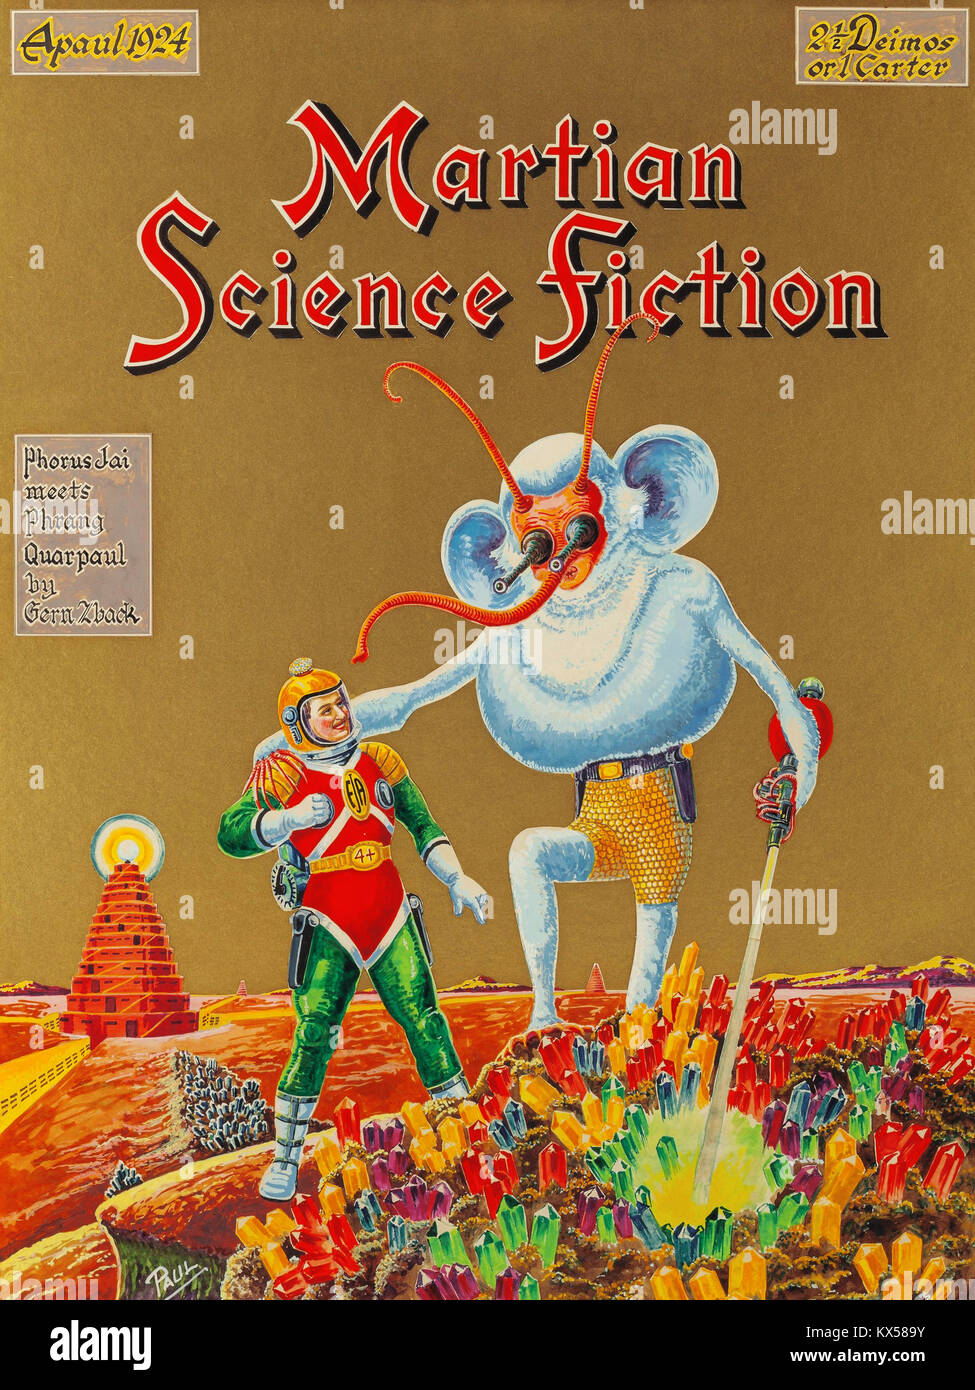 Martian Science Fiction - Stock Image